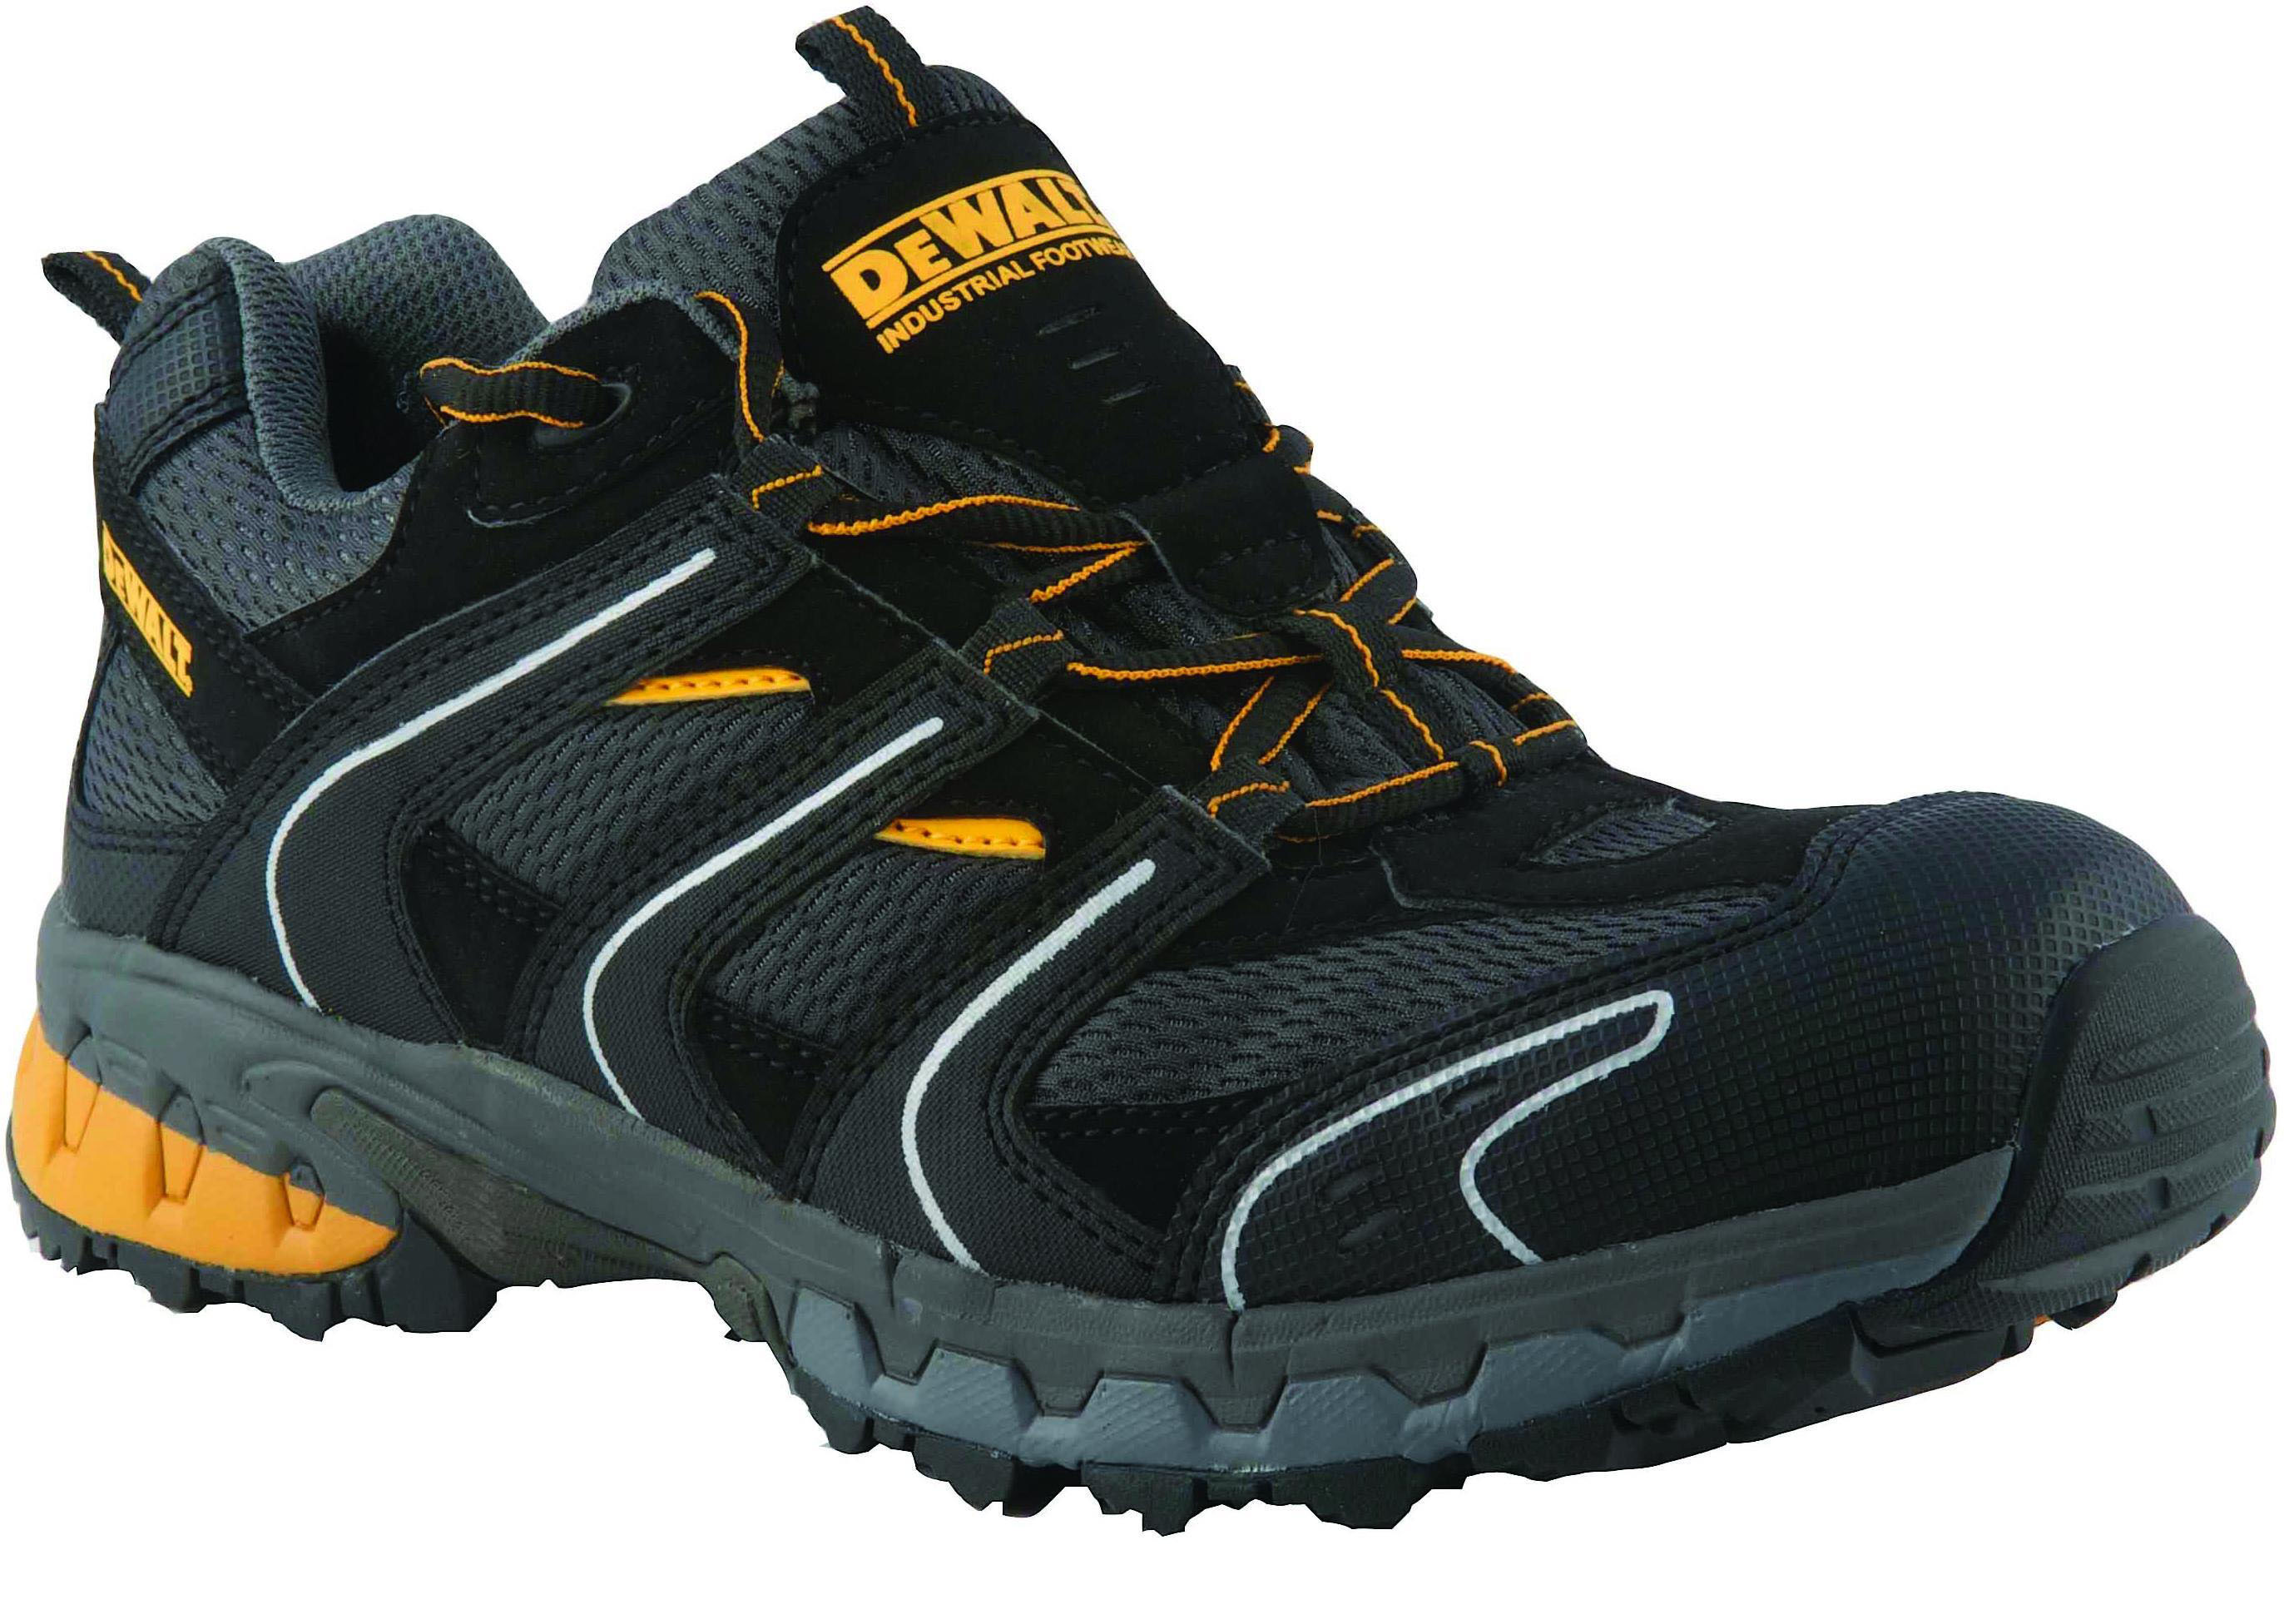 Dewalt Cutter Low cut trainer workboot Safety Shoes in Dubai,UAE -CUTTER from AABTools